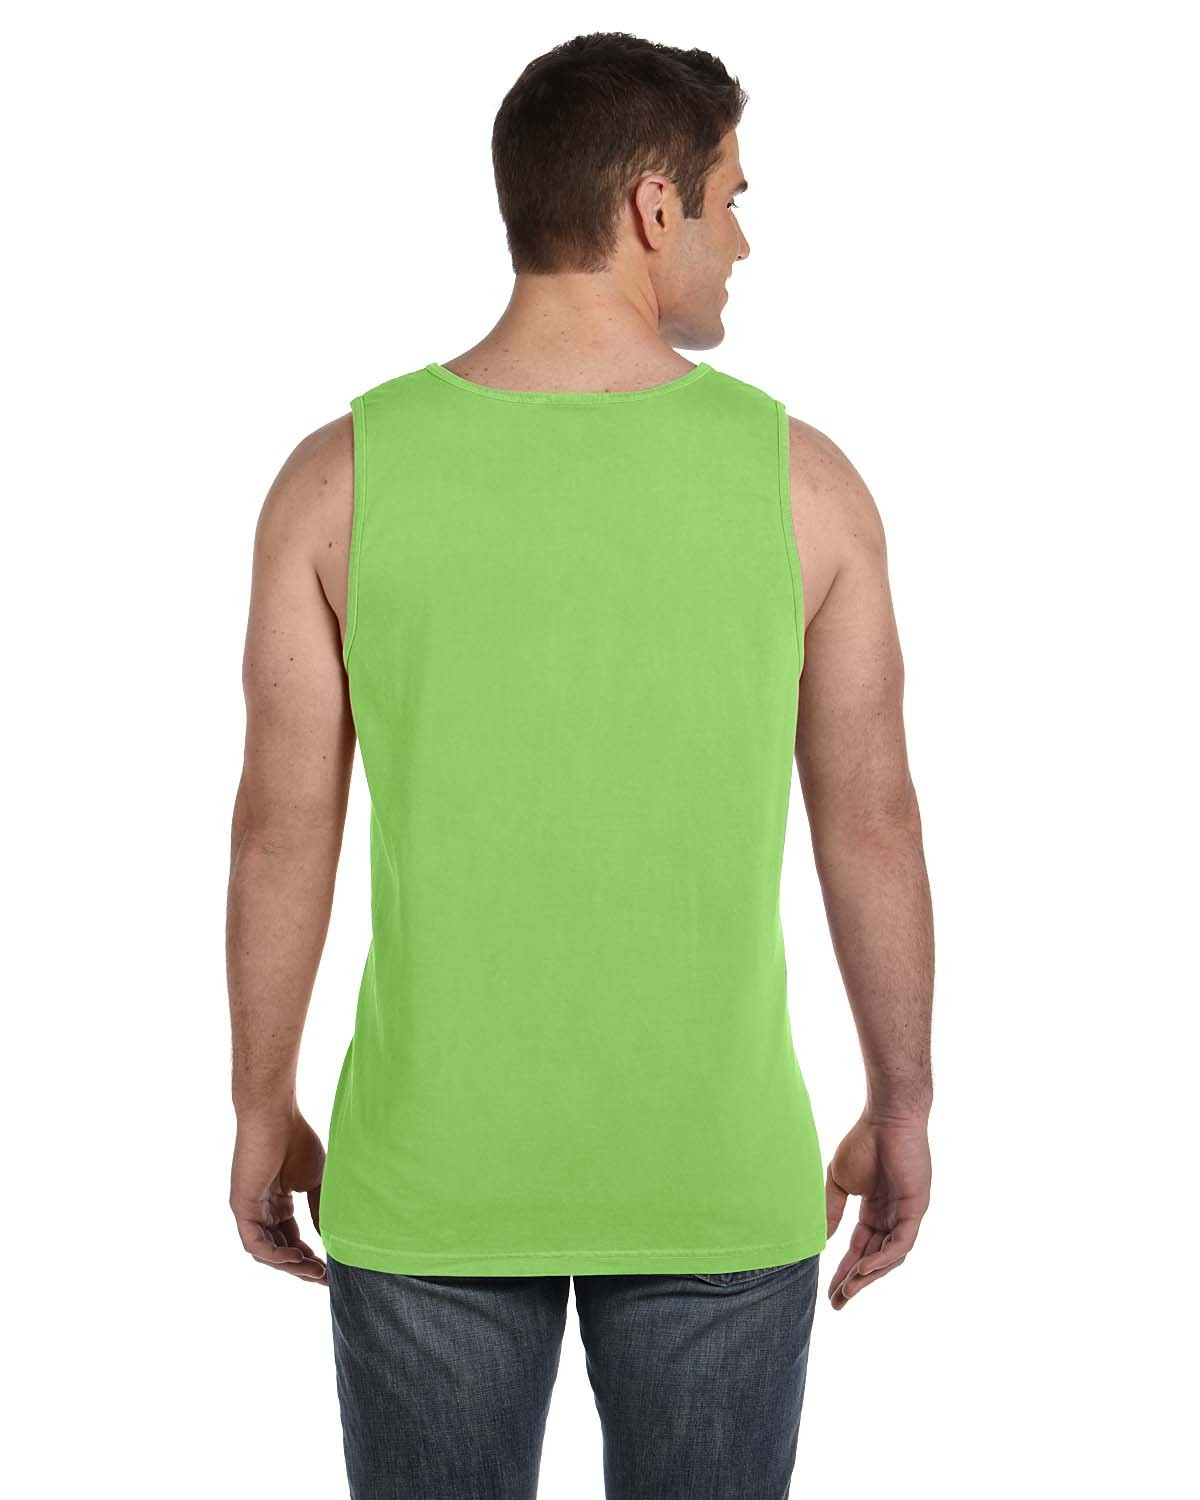 C9360 Comfort Colors LIME